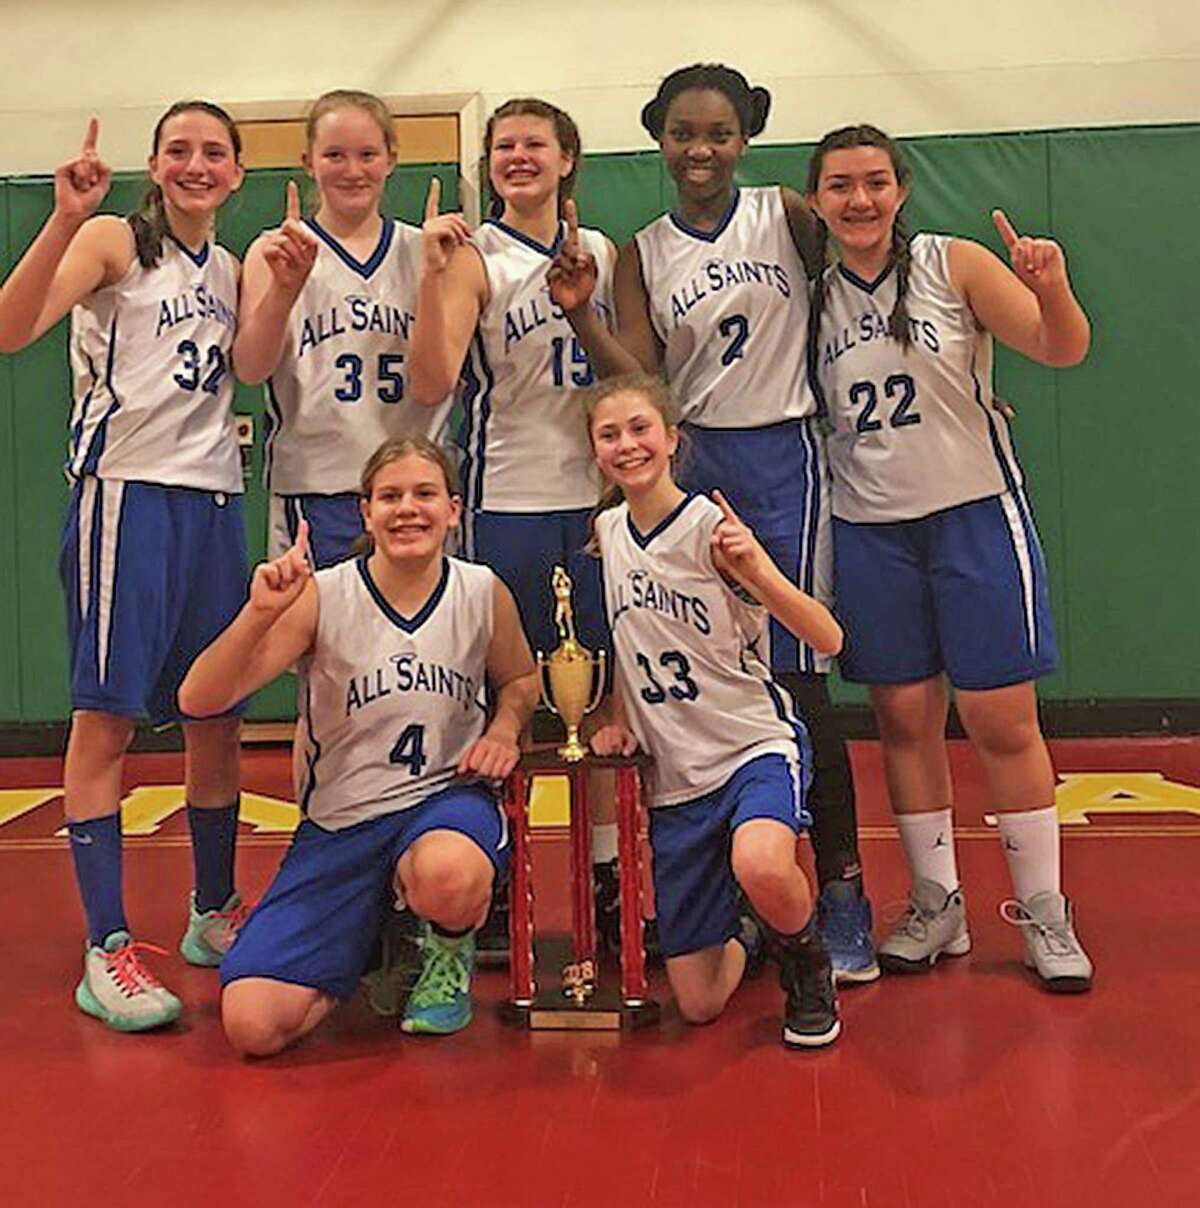 The eighth-grade team from All Saints in Norwalk won the St. Ann's championship. Players included Kayla Angrand, KK Geignetter, Mia Geignetter, Olivia Mattera, Lila Pinho, Morgan White and Jaclyn Zerrusen.